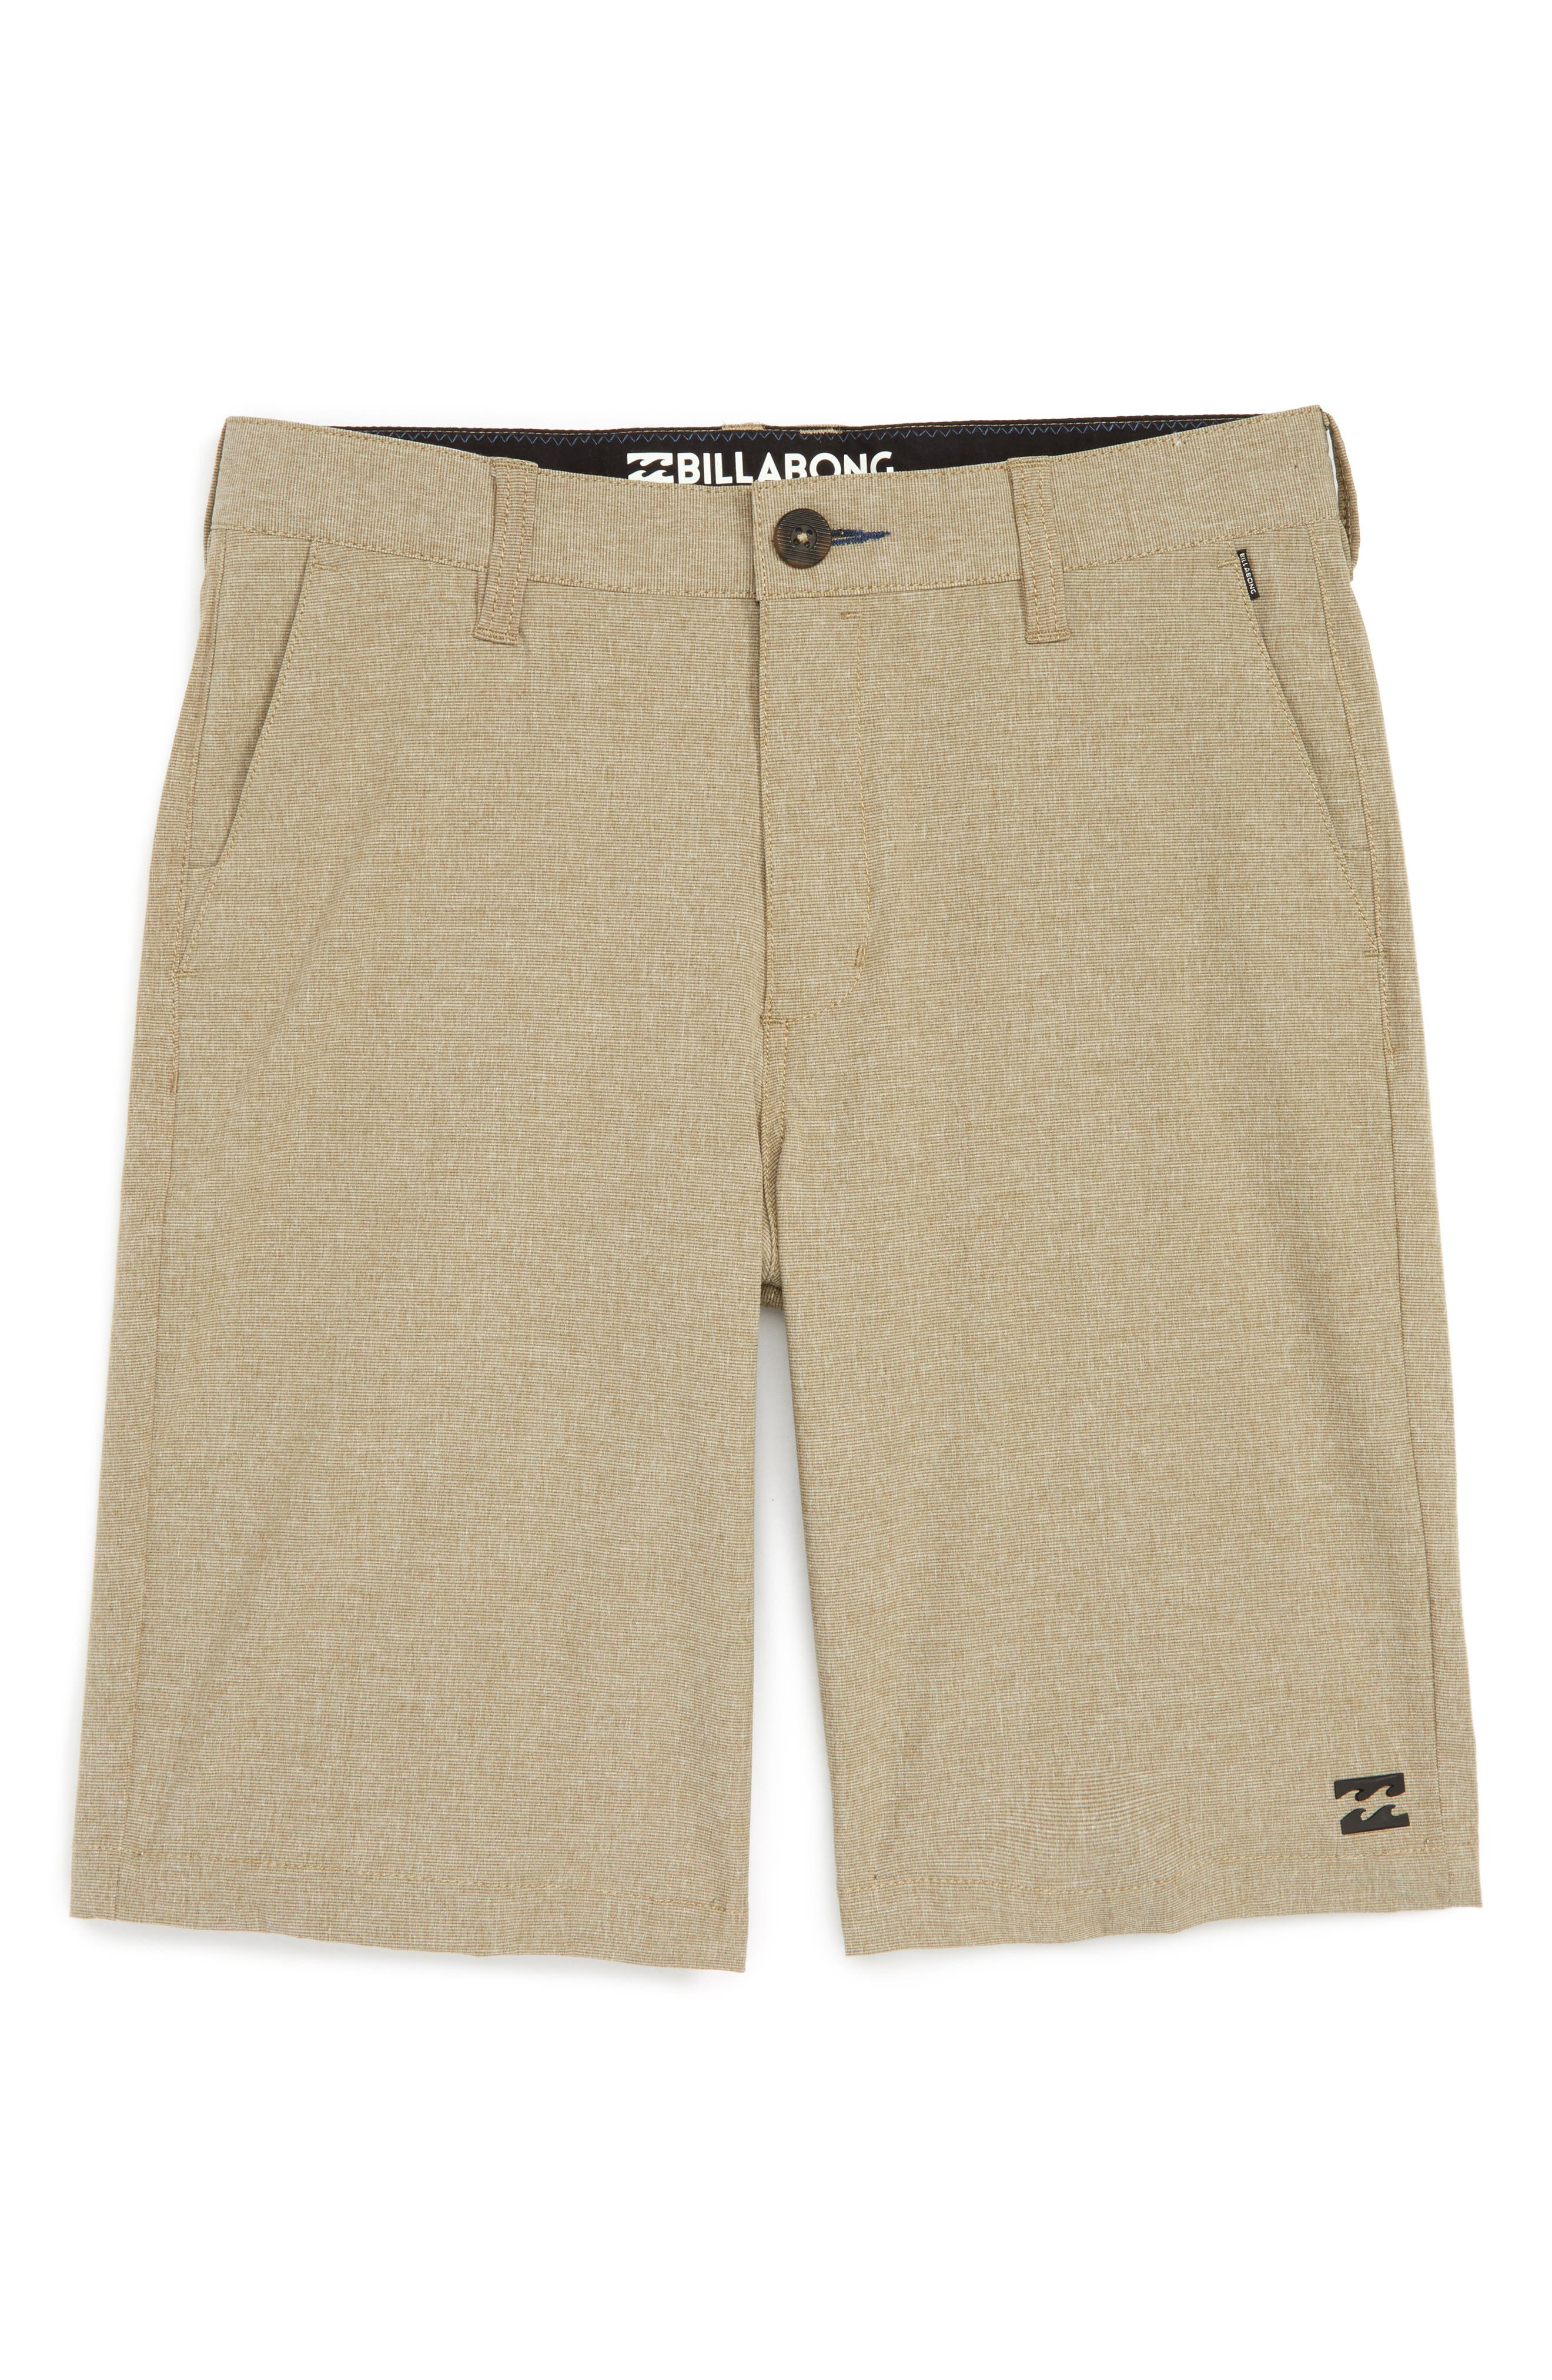 Billabong Crossfire X Submersible Hybrid Shorts (Toddler Boys, Little Boys & Big Boys)